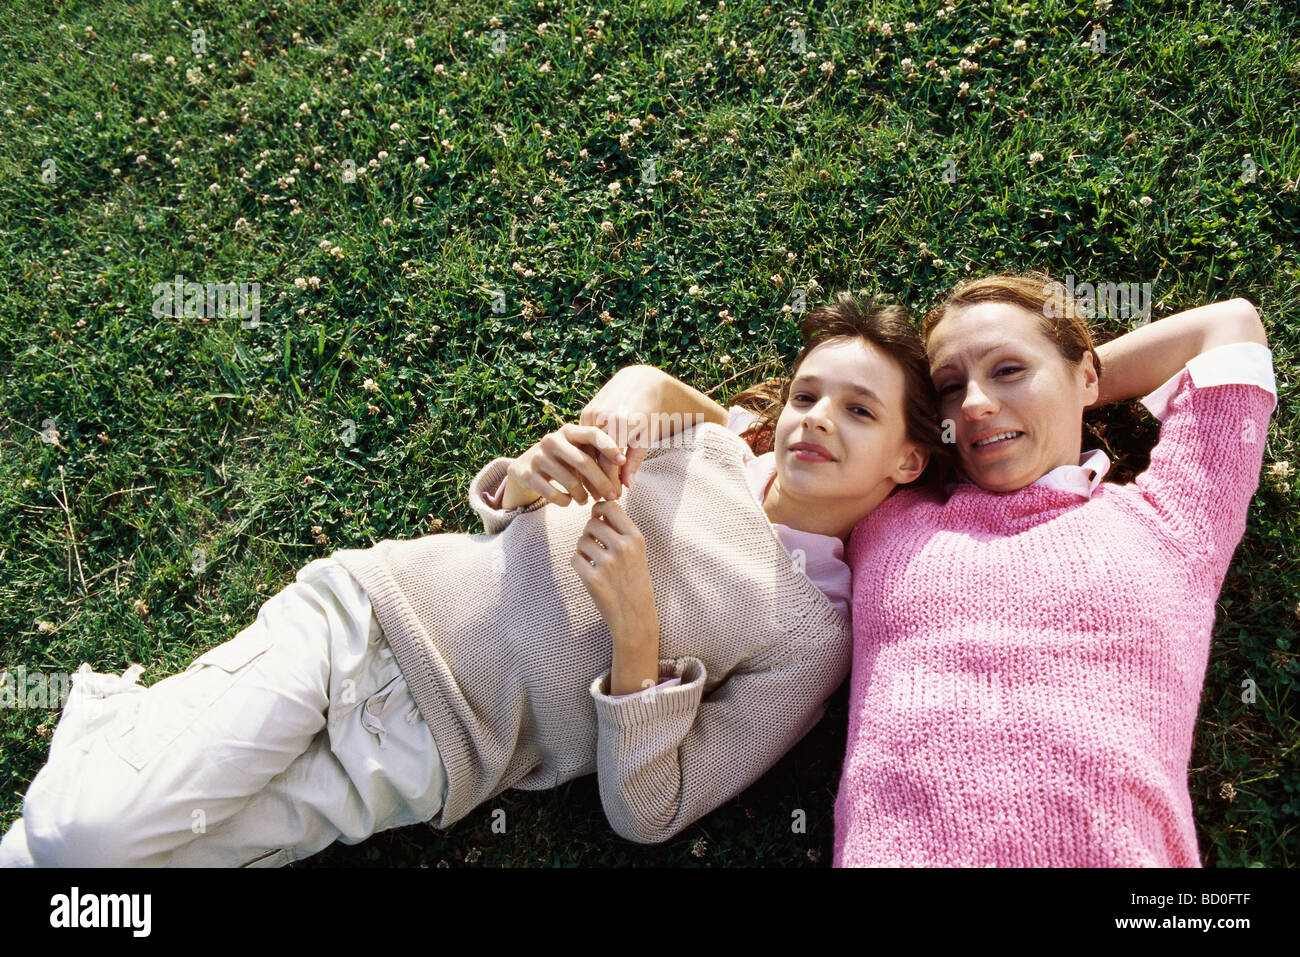 Mother and daughter lying together on grass, smiling at camera - Stock Image